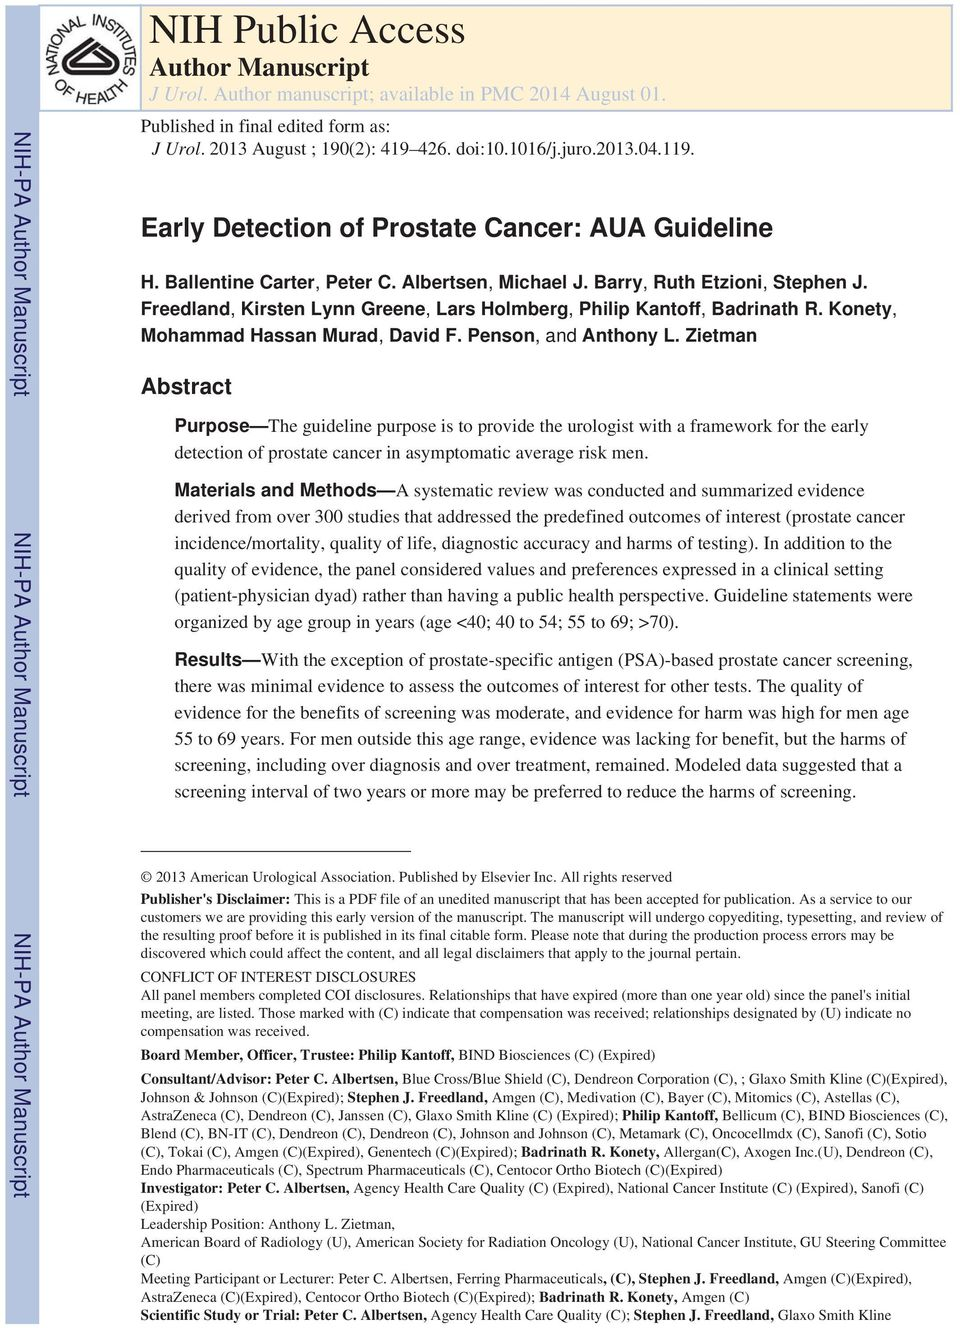 Early Detection of Prostate Cancer: AUA Guideline H. Ballentine Carter, Peter C. Albertsen, Michael J. Barry, Ruth Etzioni, Stephen J.